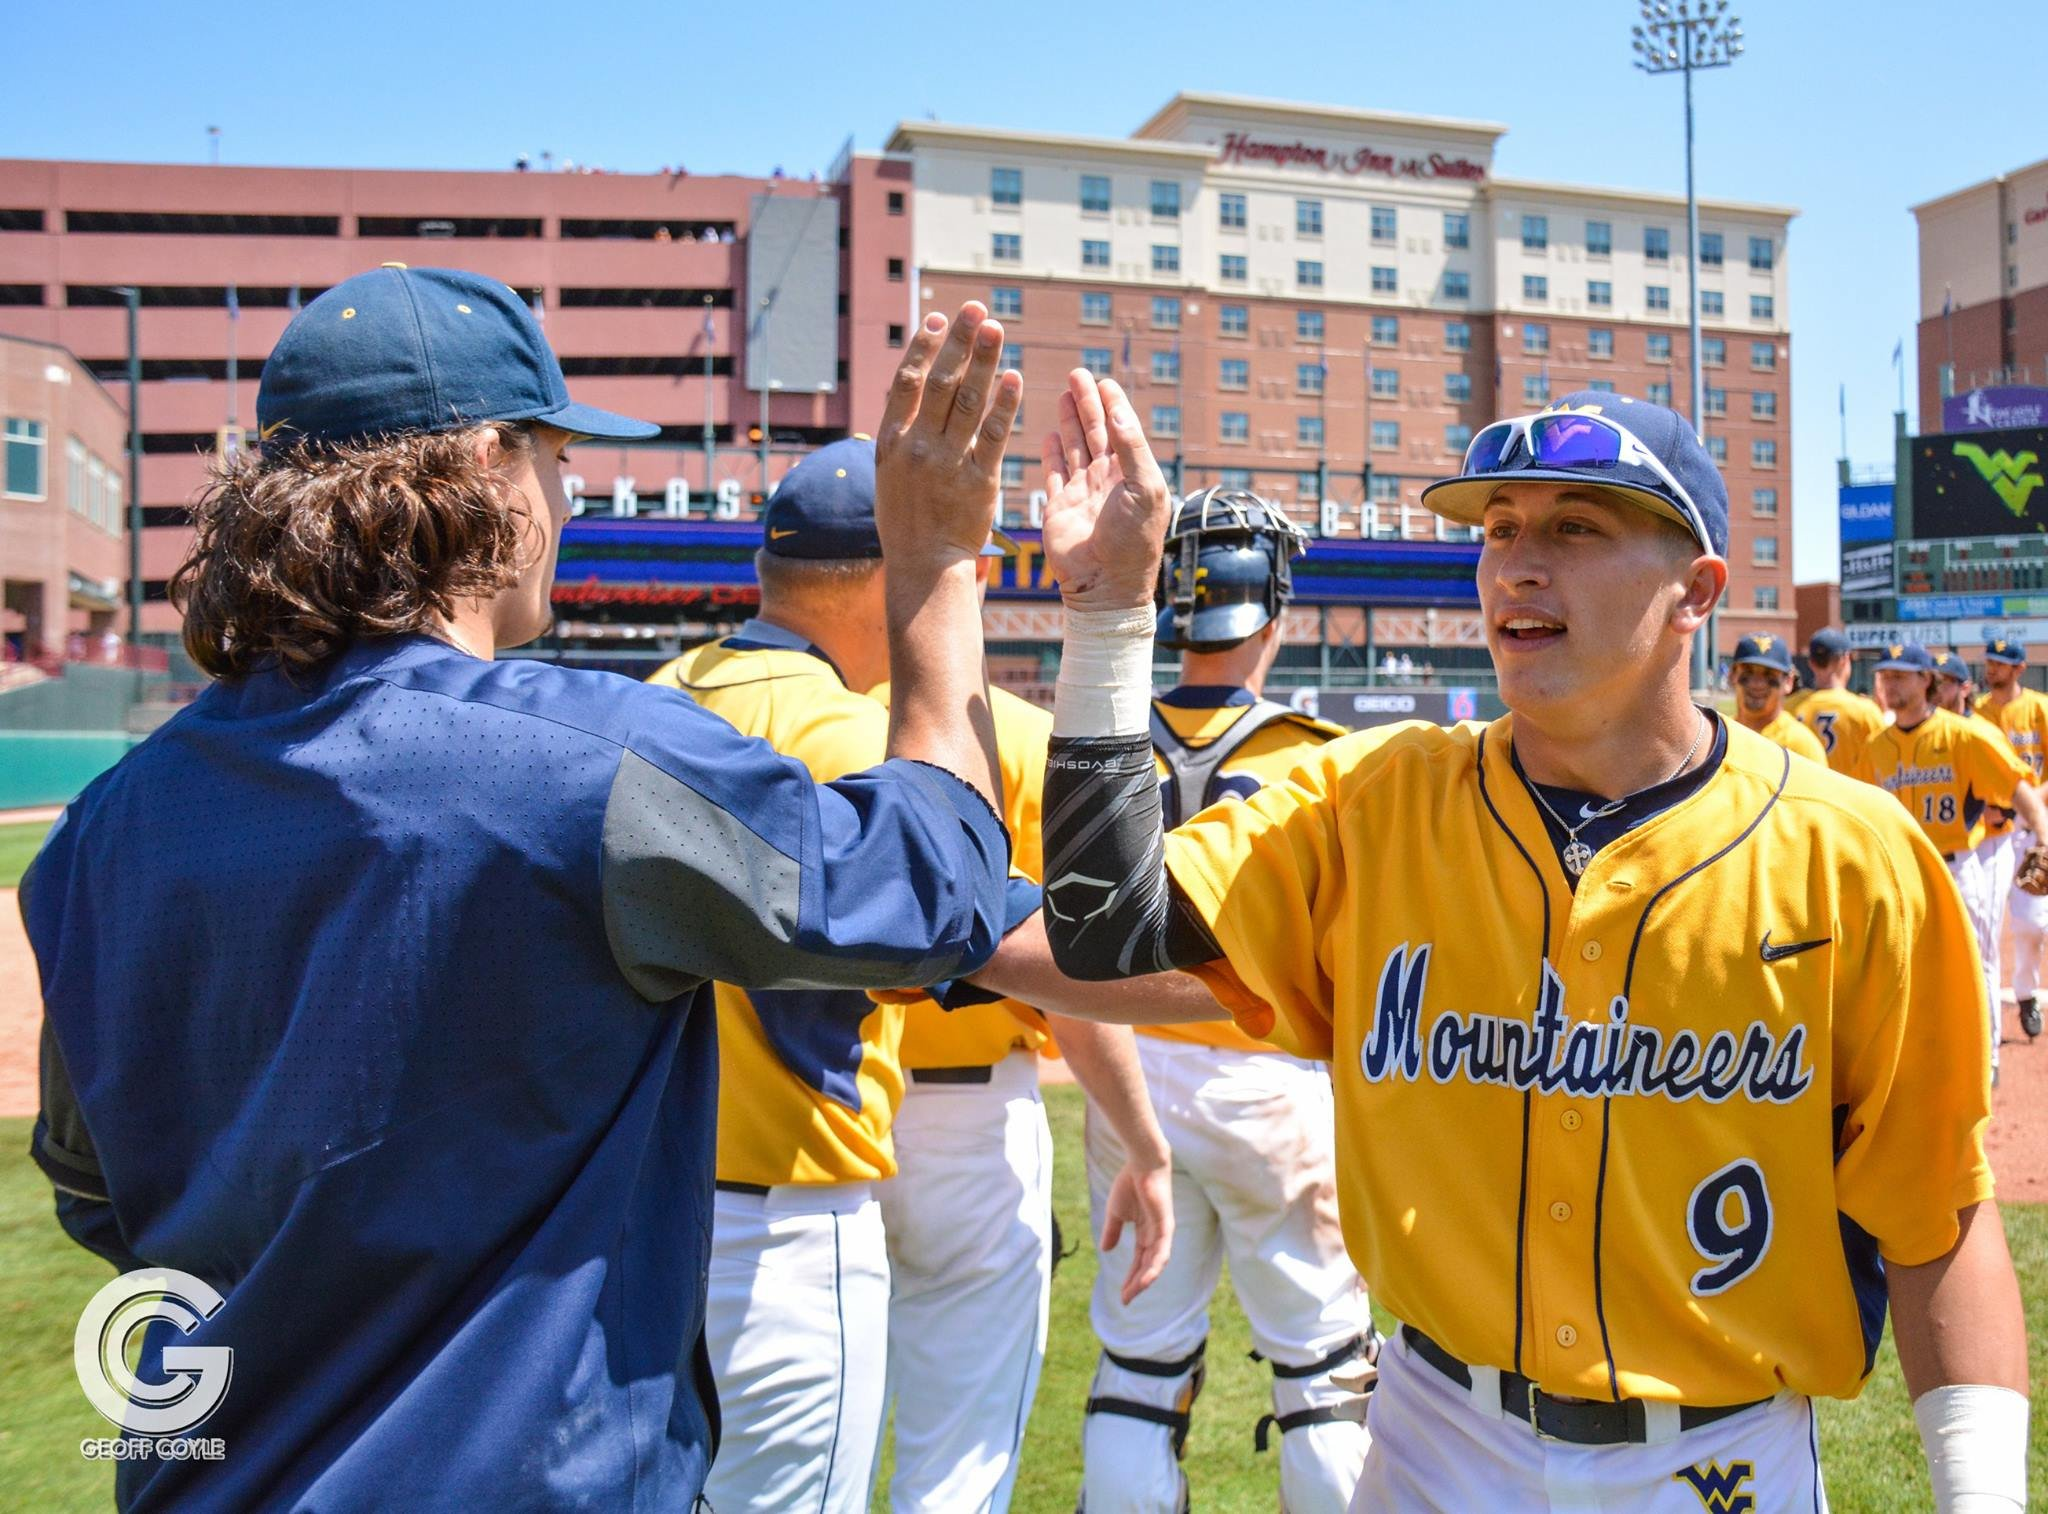 The Mountaineers and the Nittany Lions will play at PNC Park on May 10 at 7 p.m. (PHOTO: Geoff Coyle)